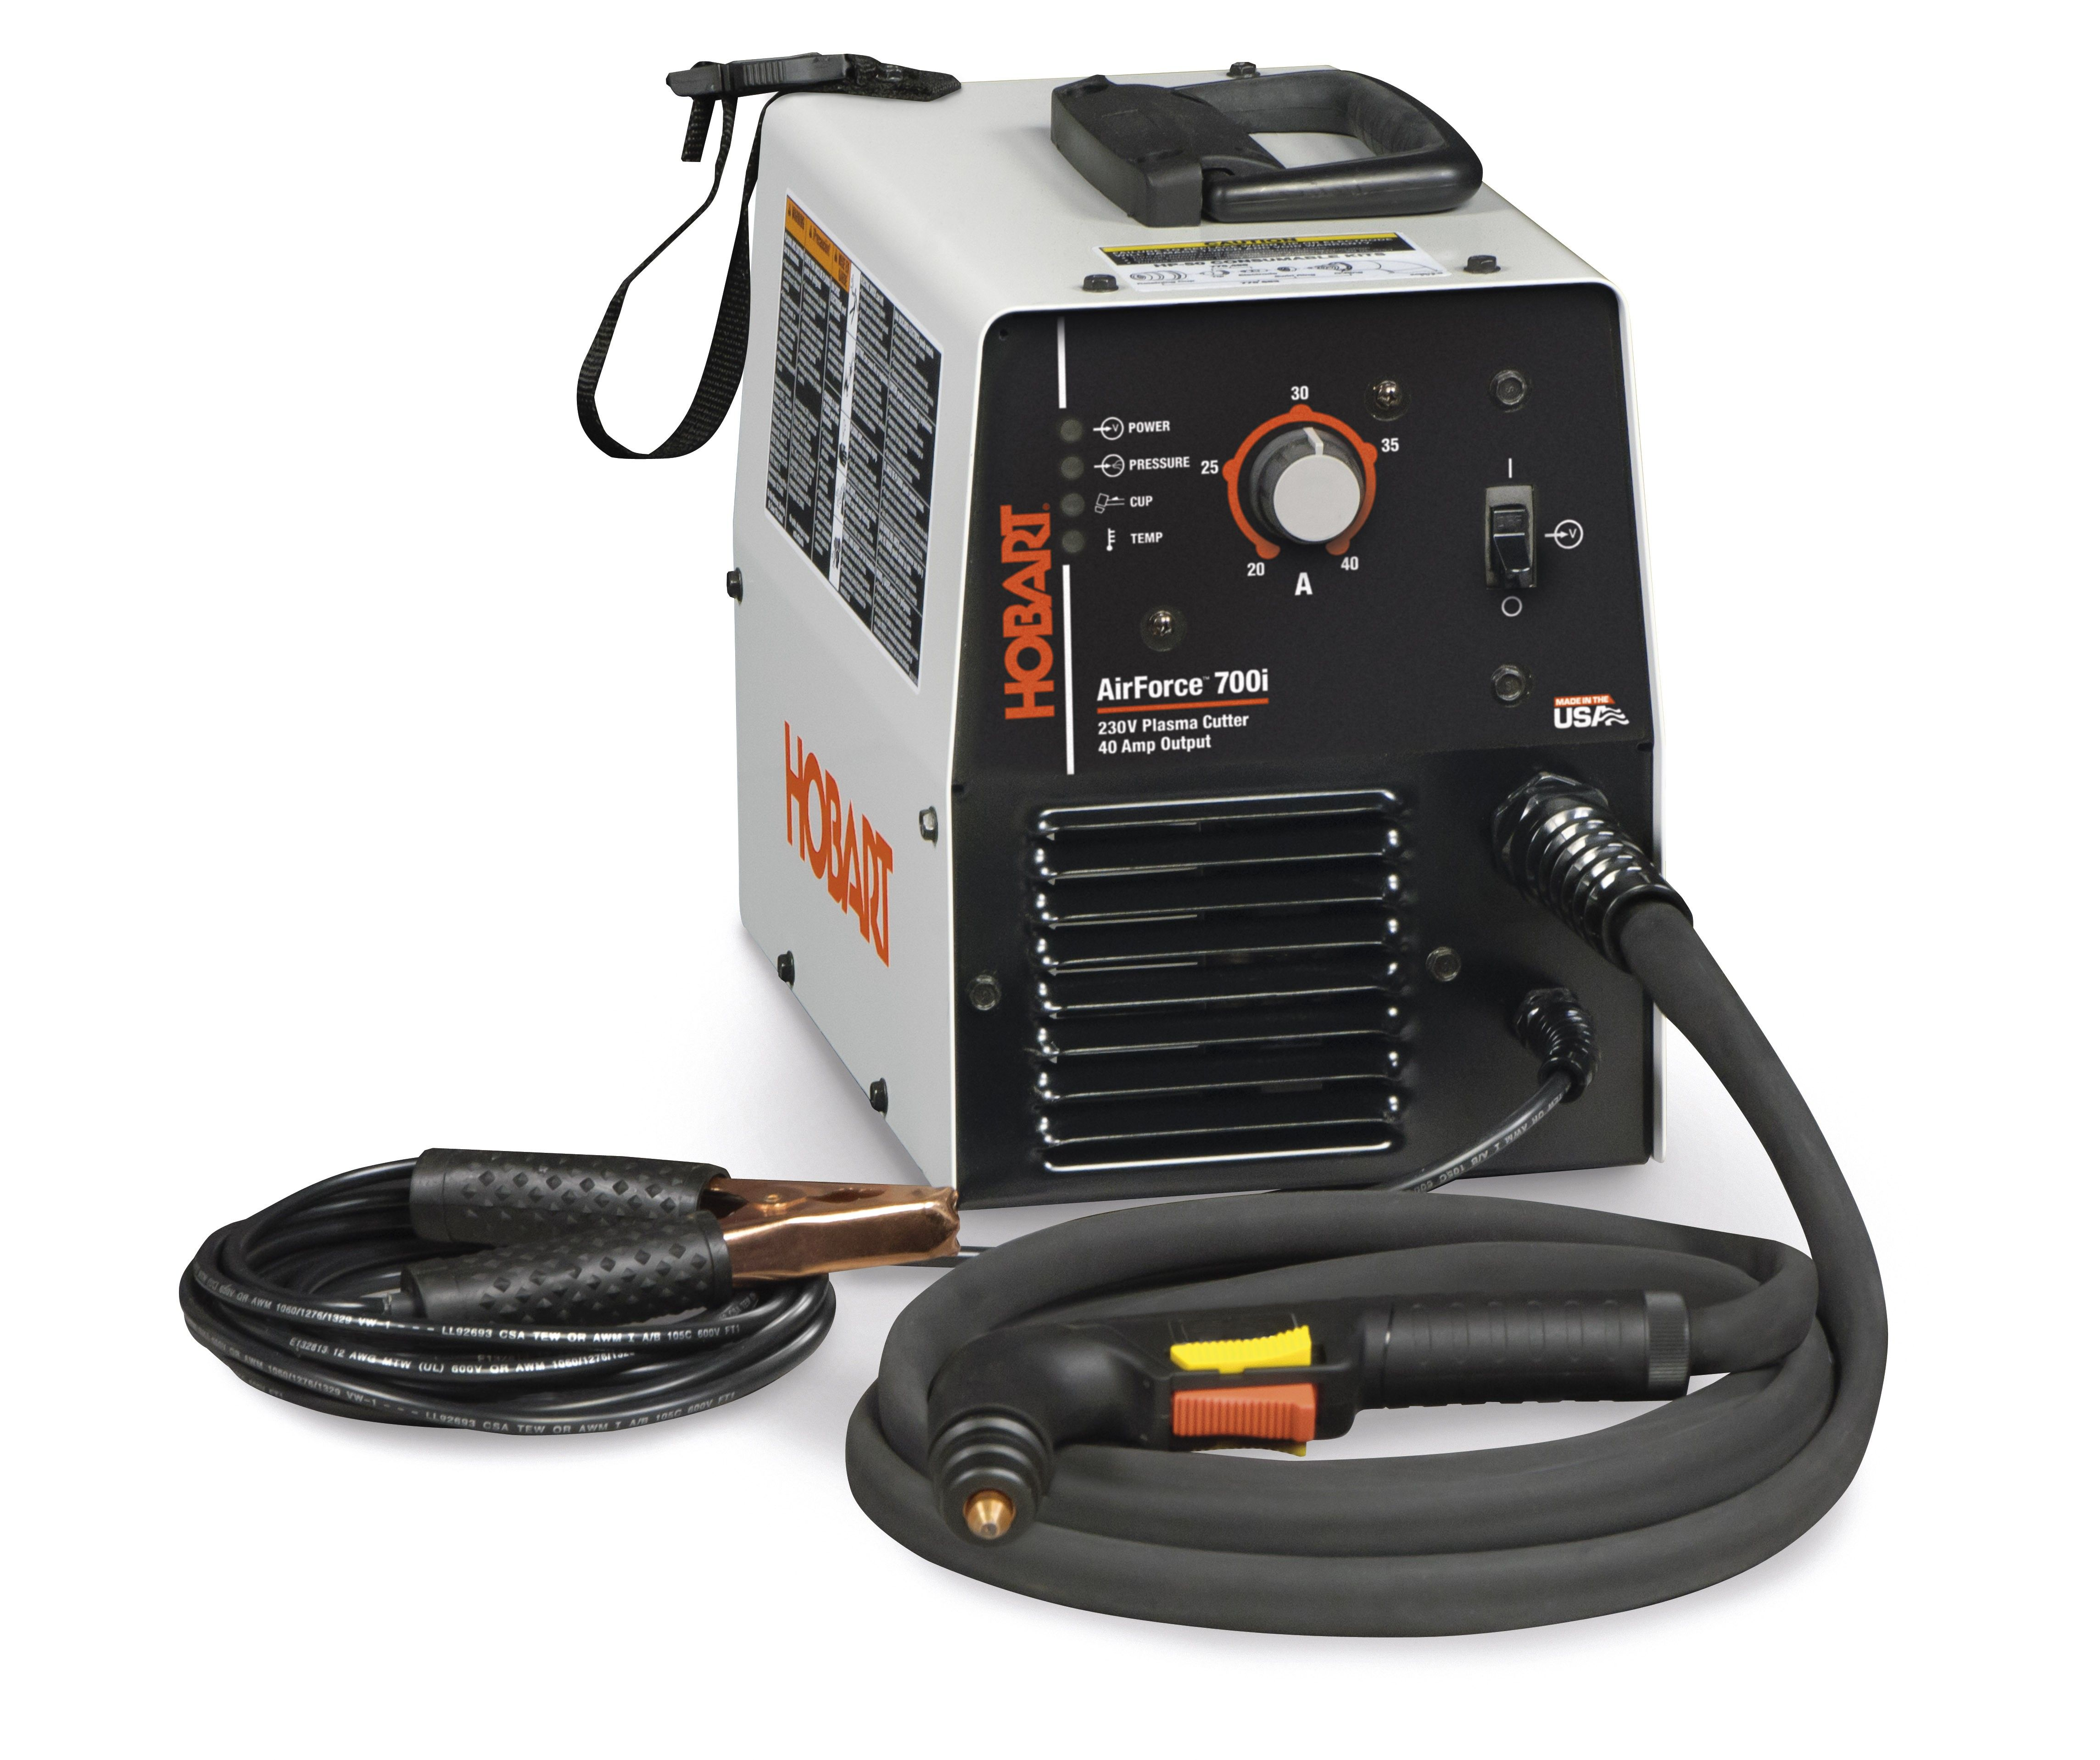 advantage output based inverter cutters amp northern welding klutch exclusive plasma lincoln reconditioned cutting category shop cutter equipment tool tools